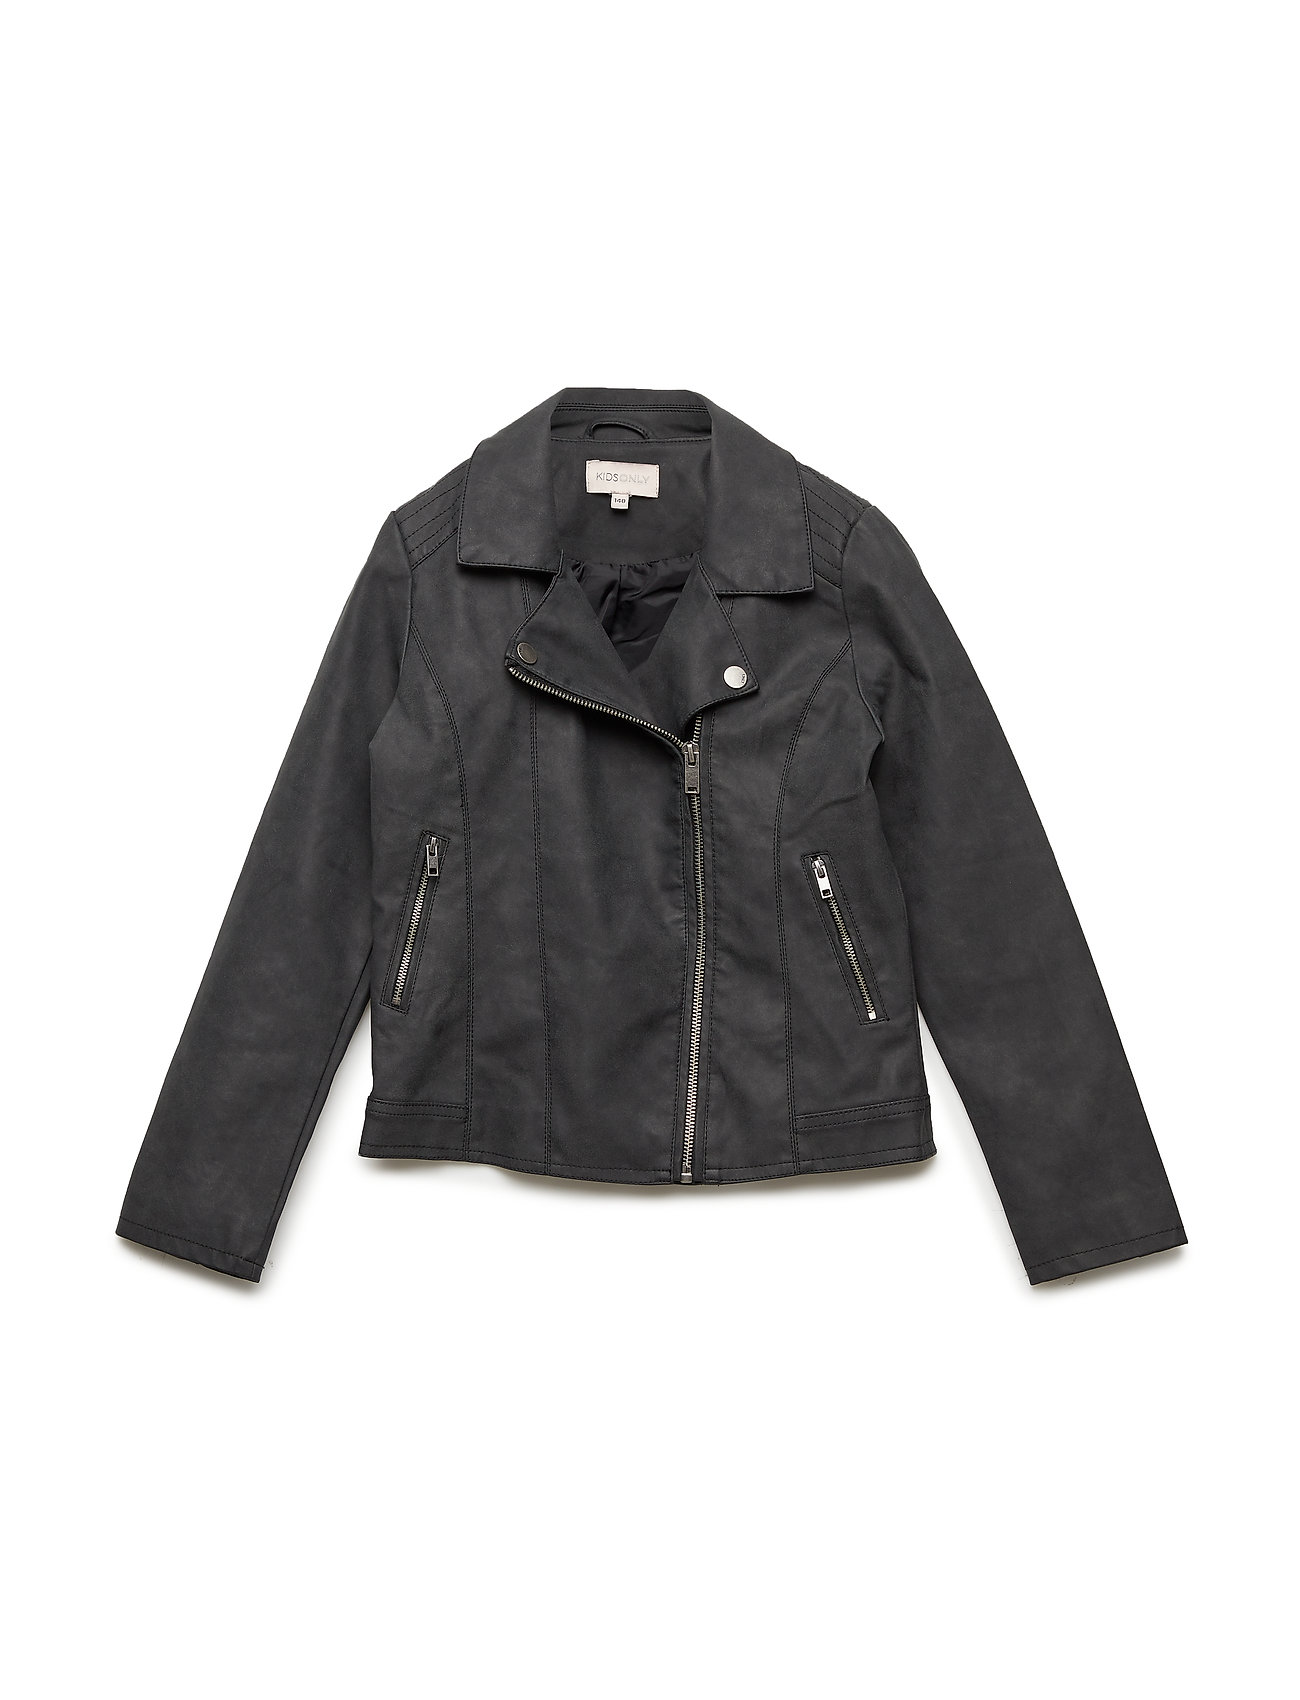 Koncarla Faux Leather Biker Otw - Kids Only